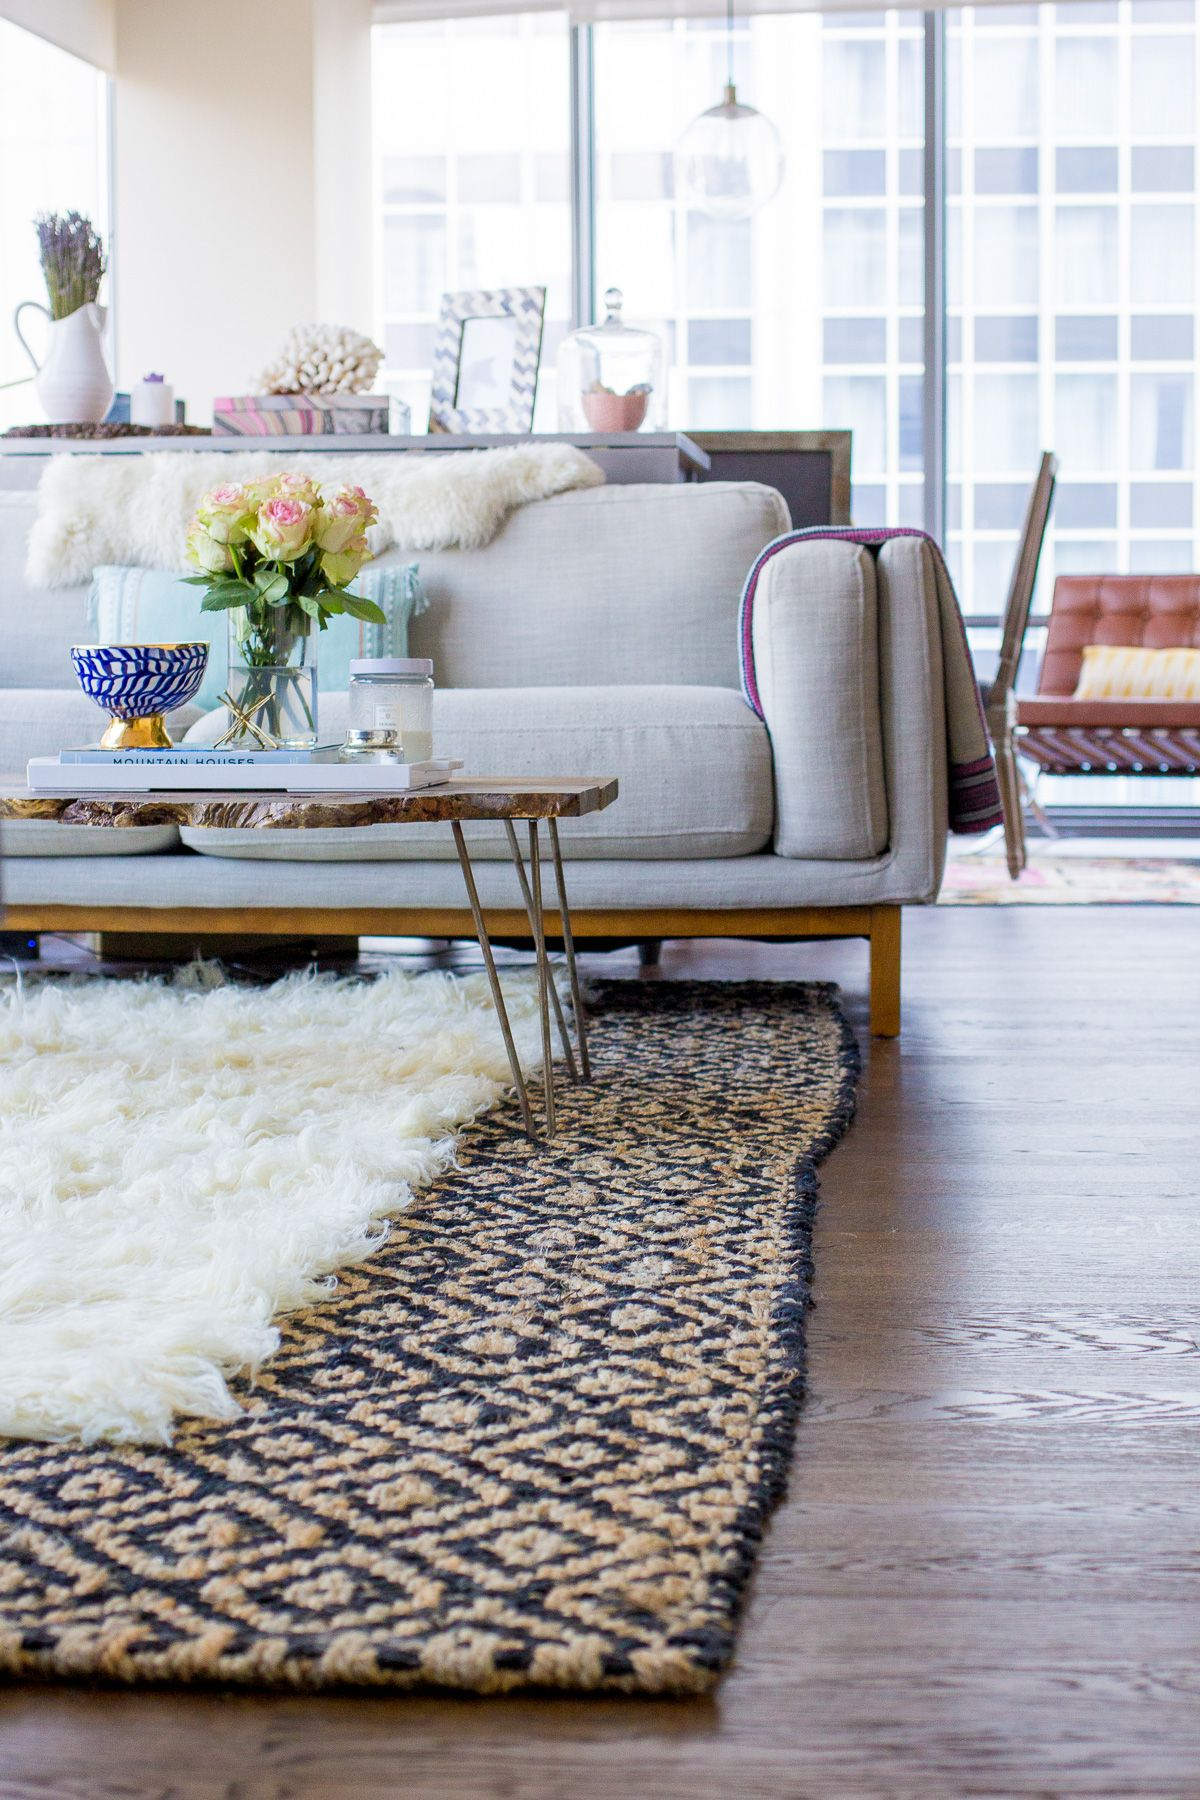 How To Layer Rugs Like A Pro Home Living Room Decor Rugs In Living Room Living Room Decor Cozy